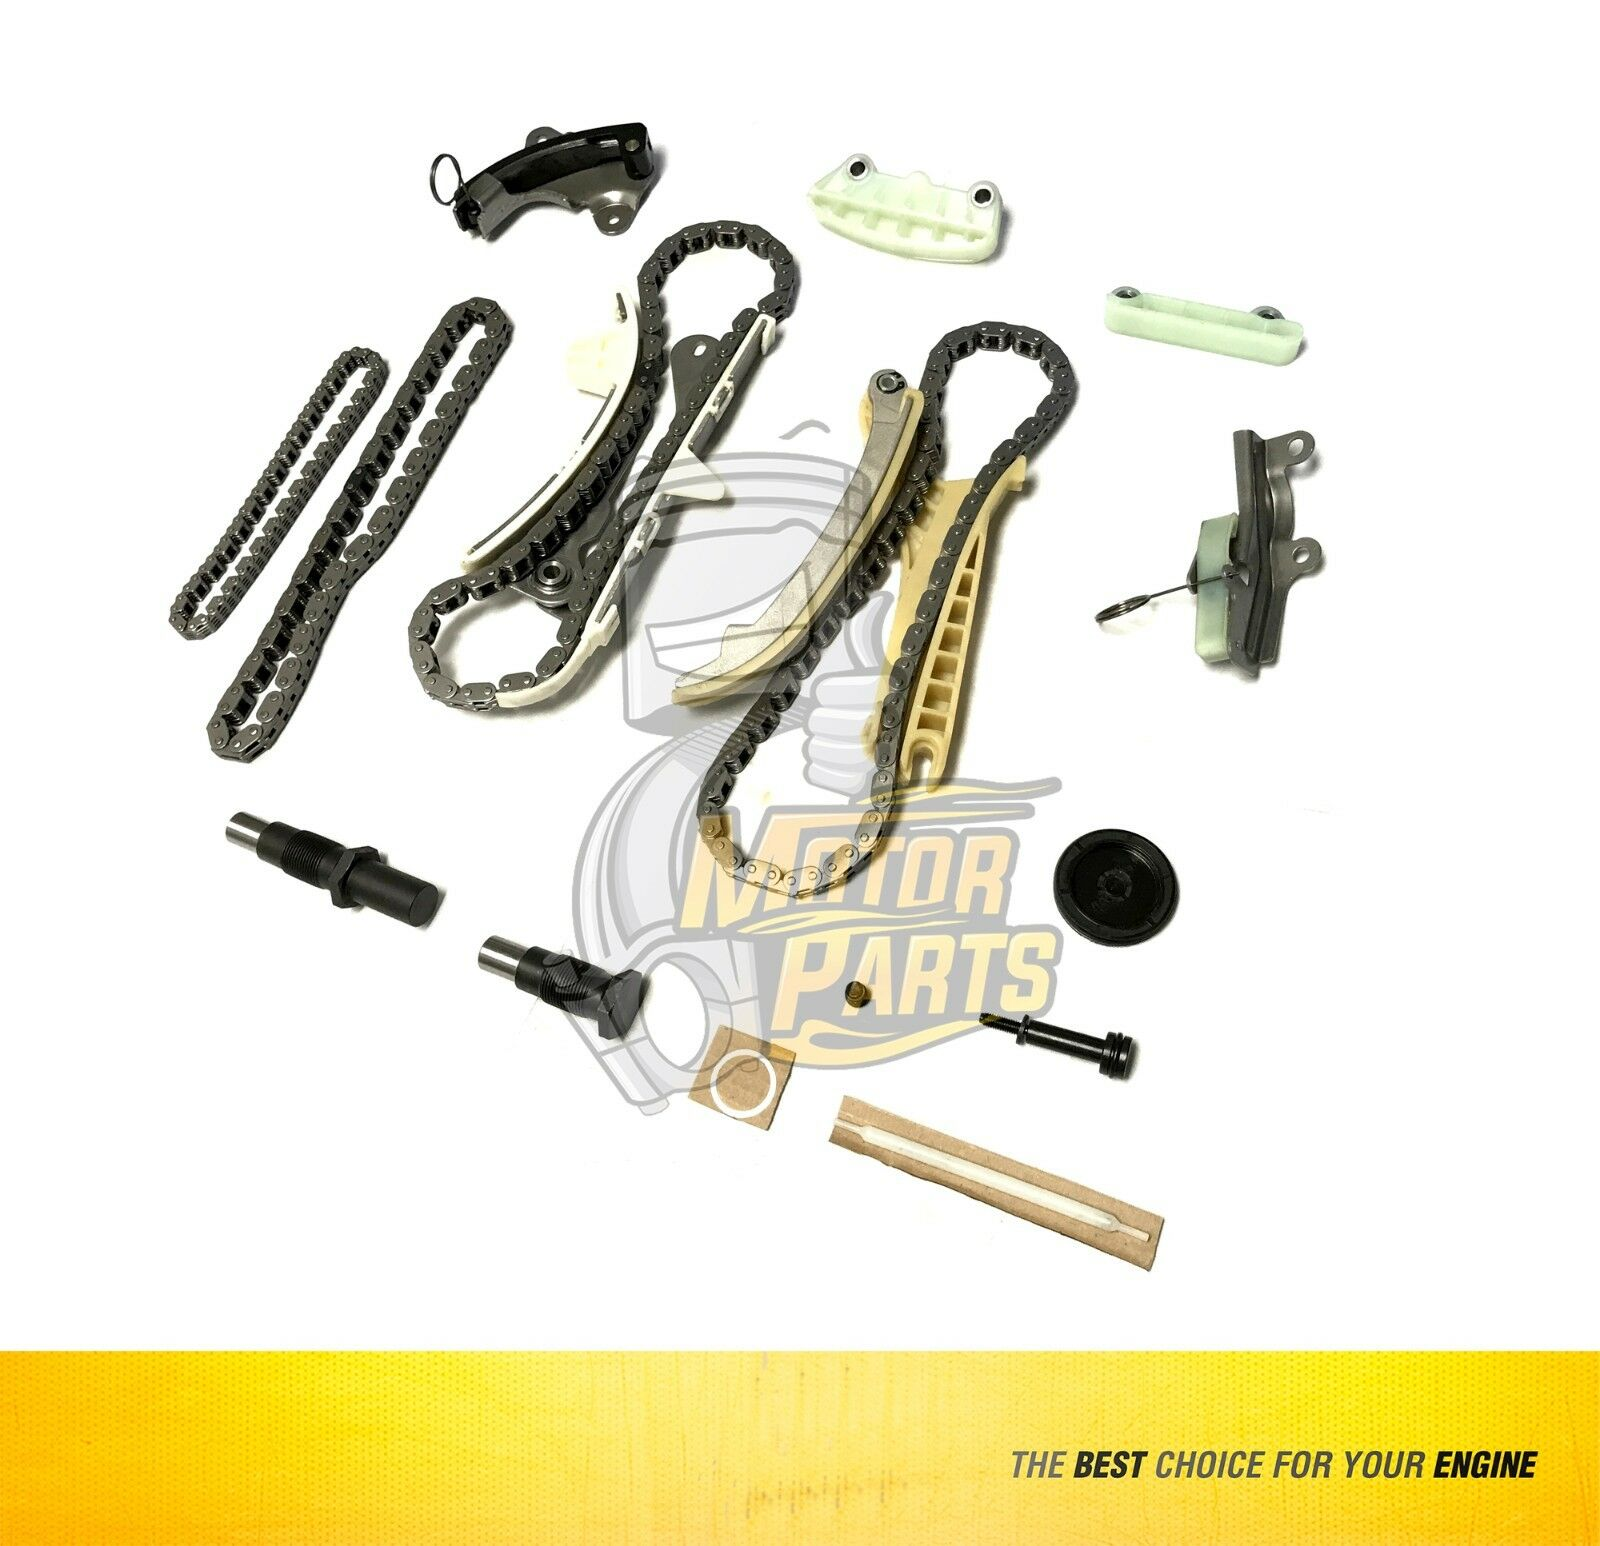 2006 Ford Mustang 4 0l Wiring Harness Electrical Diagrams Engine Kit Timing Chain For 97 06 Explorer Ranger Mazda Chevy Cobalt